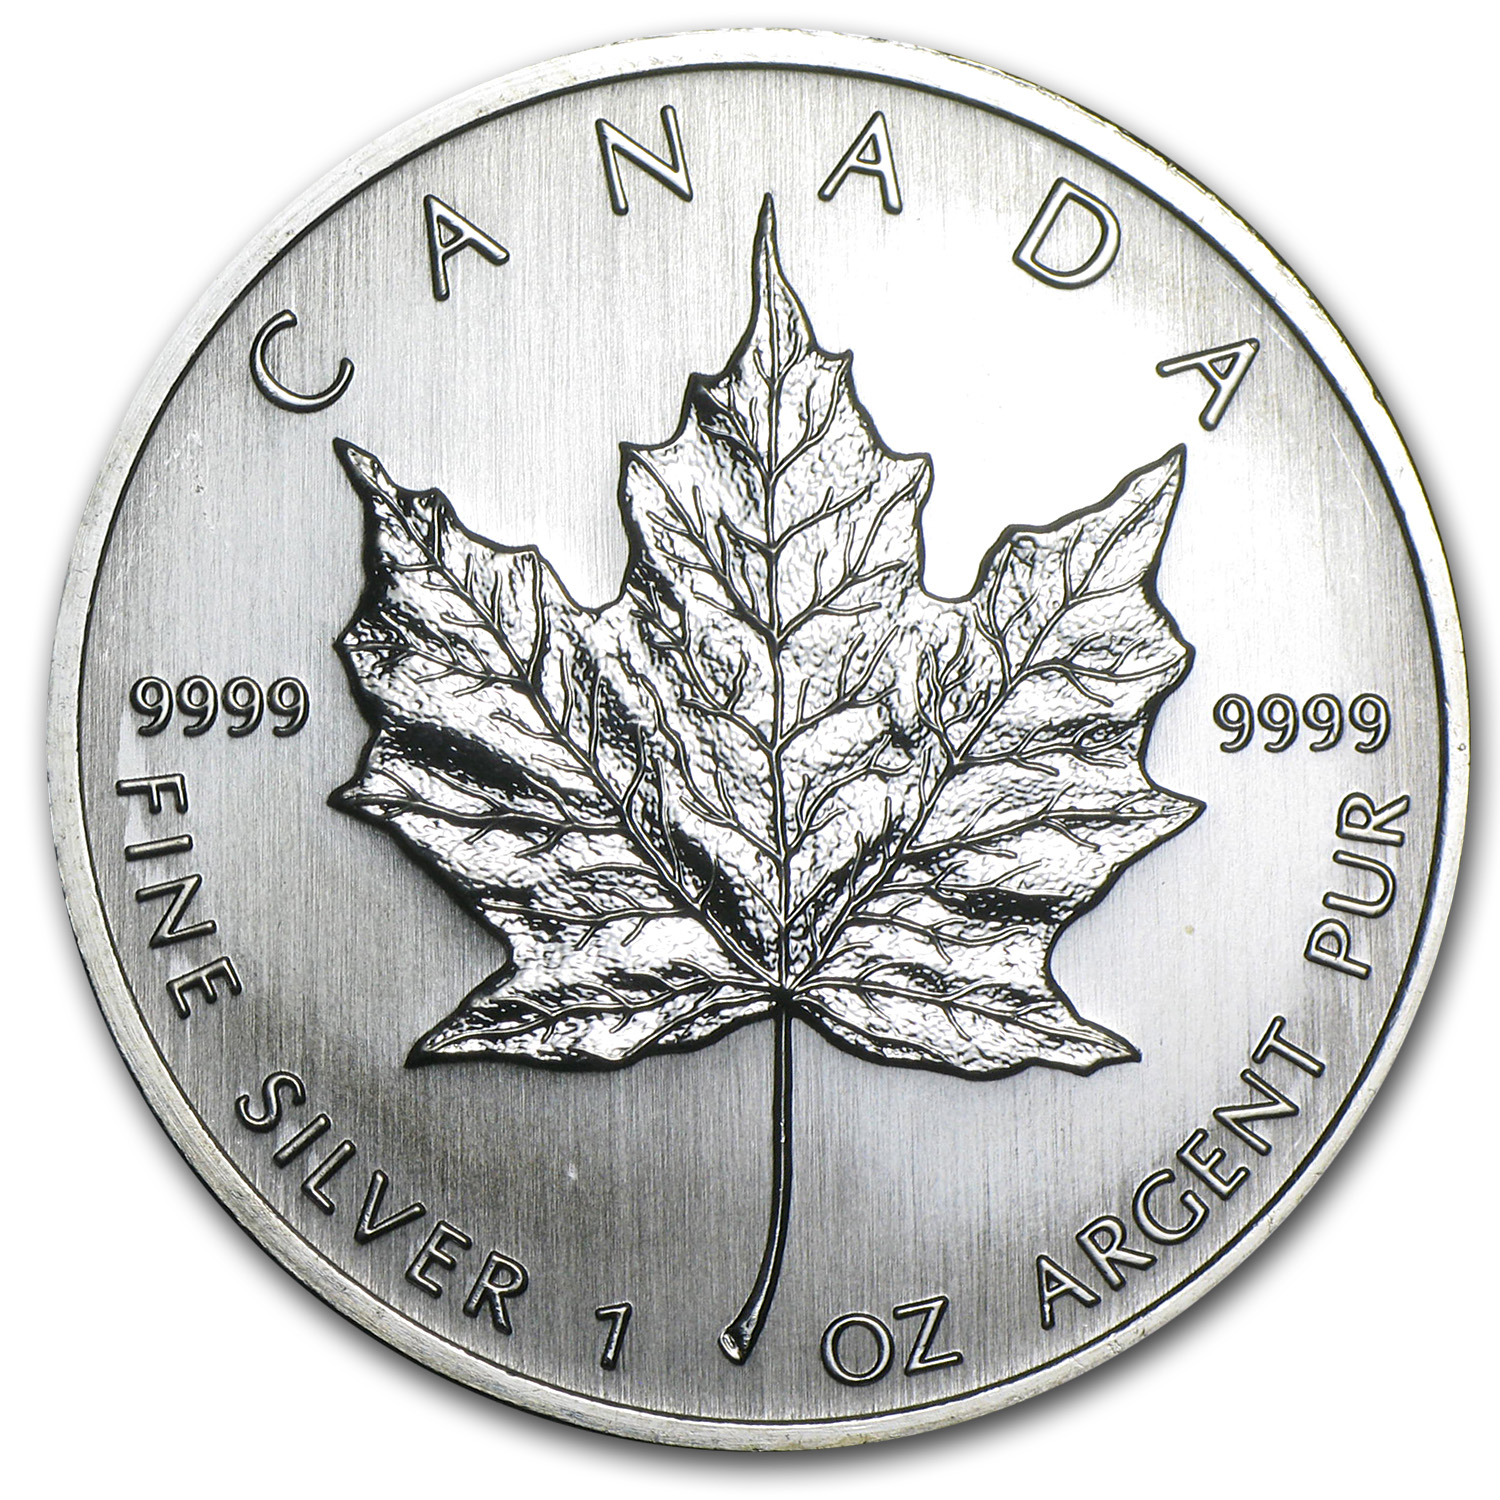 2008 1 oz Silver Canadian Maple Leaf BU